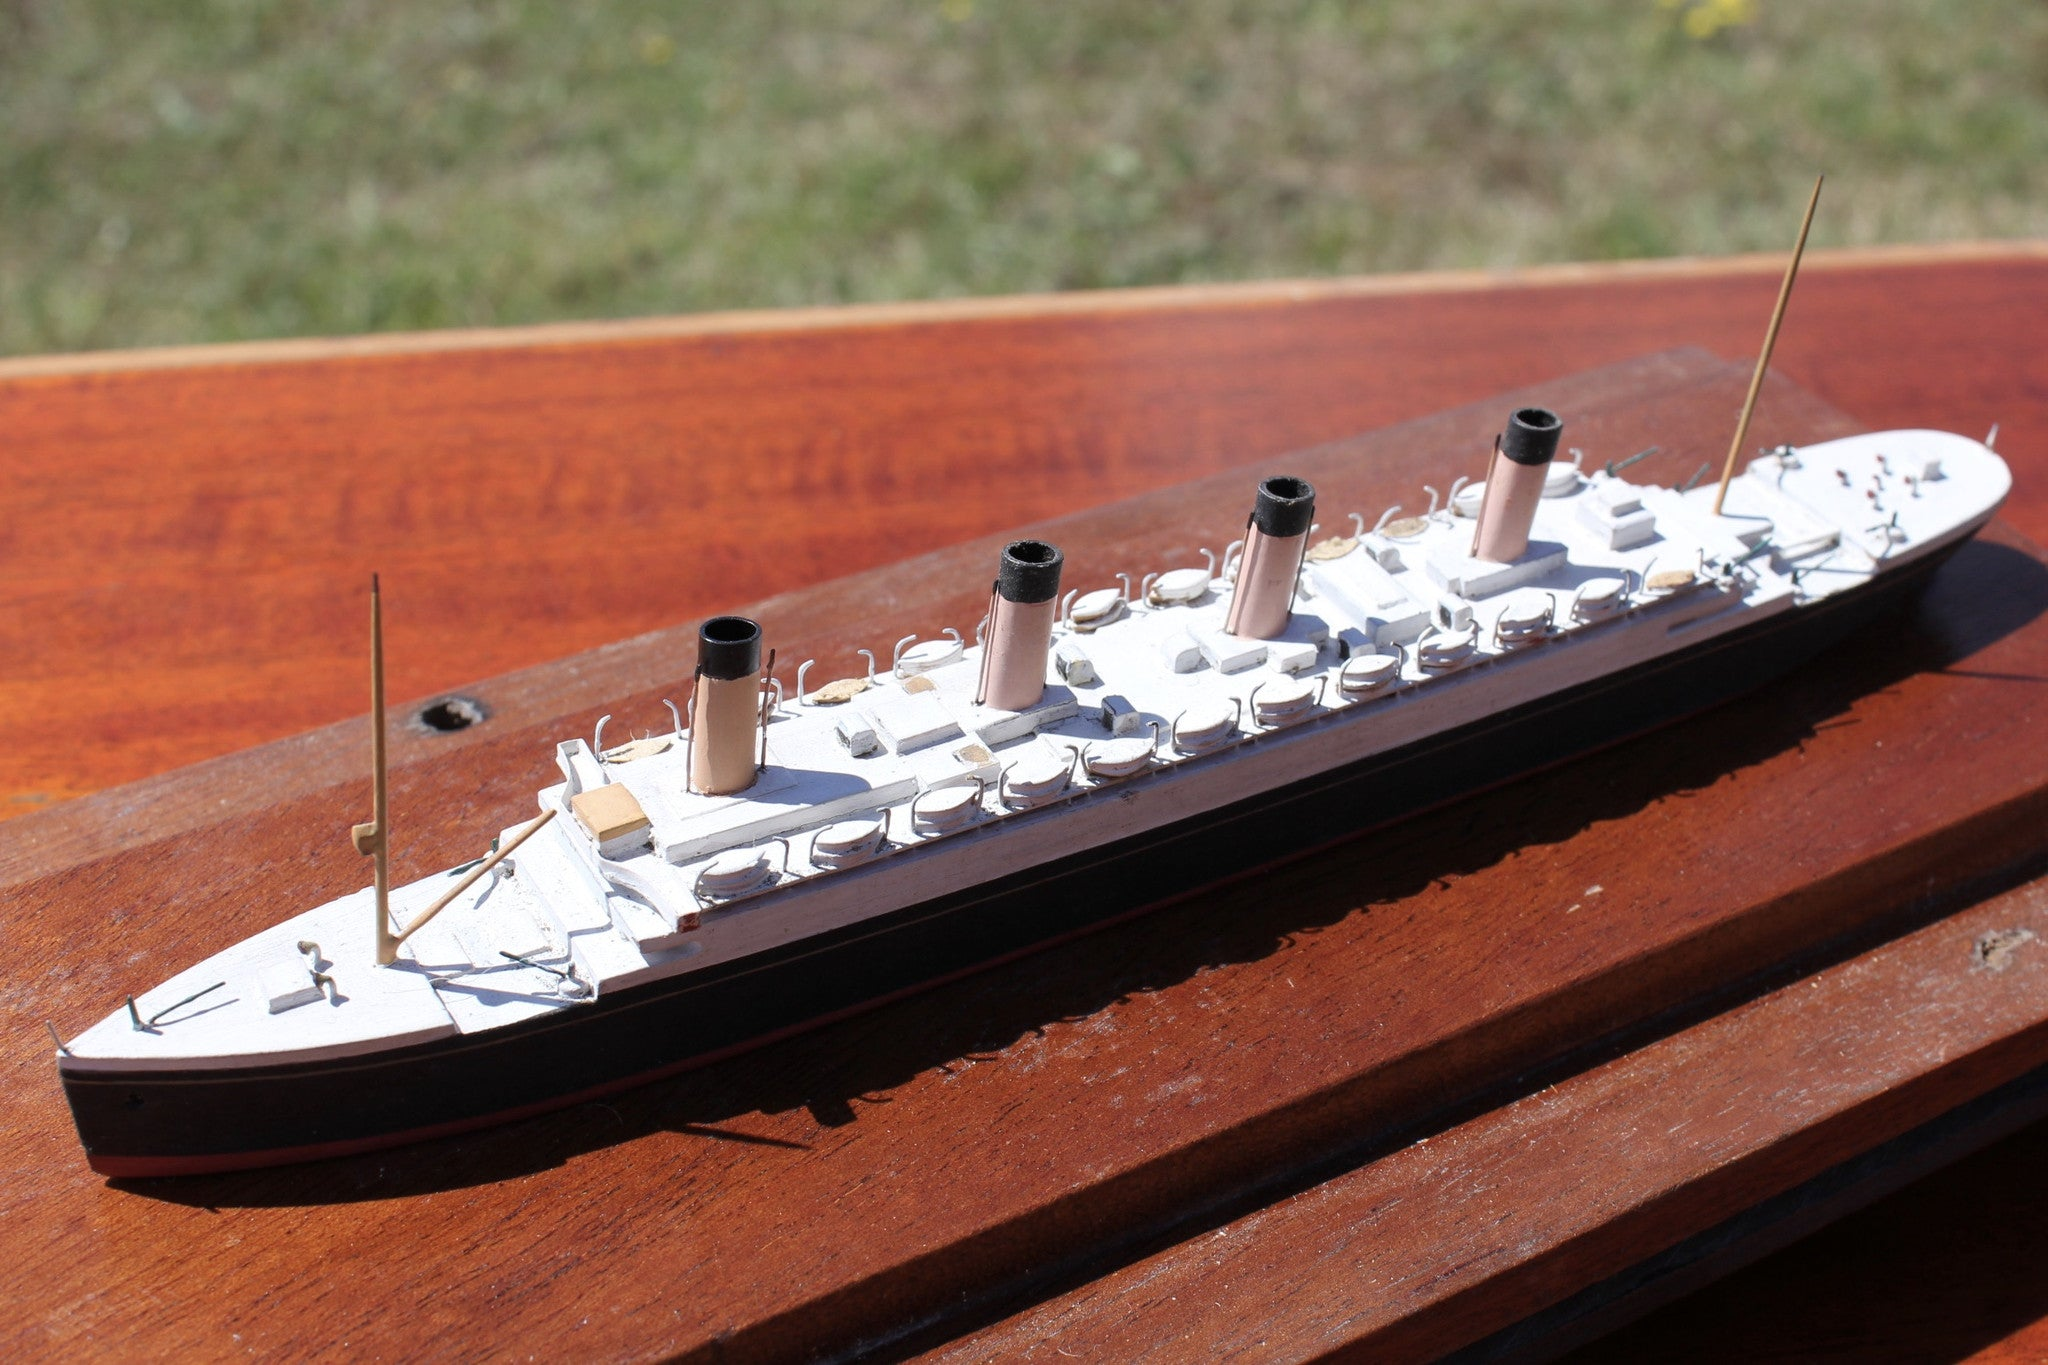 Bassett Lowke, White Star Line. RMS Olympic, waterline model timbers from ship